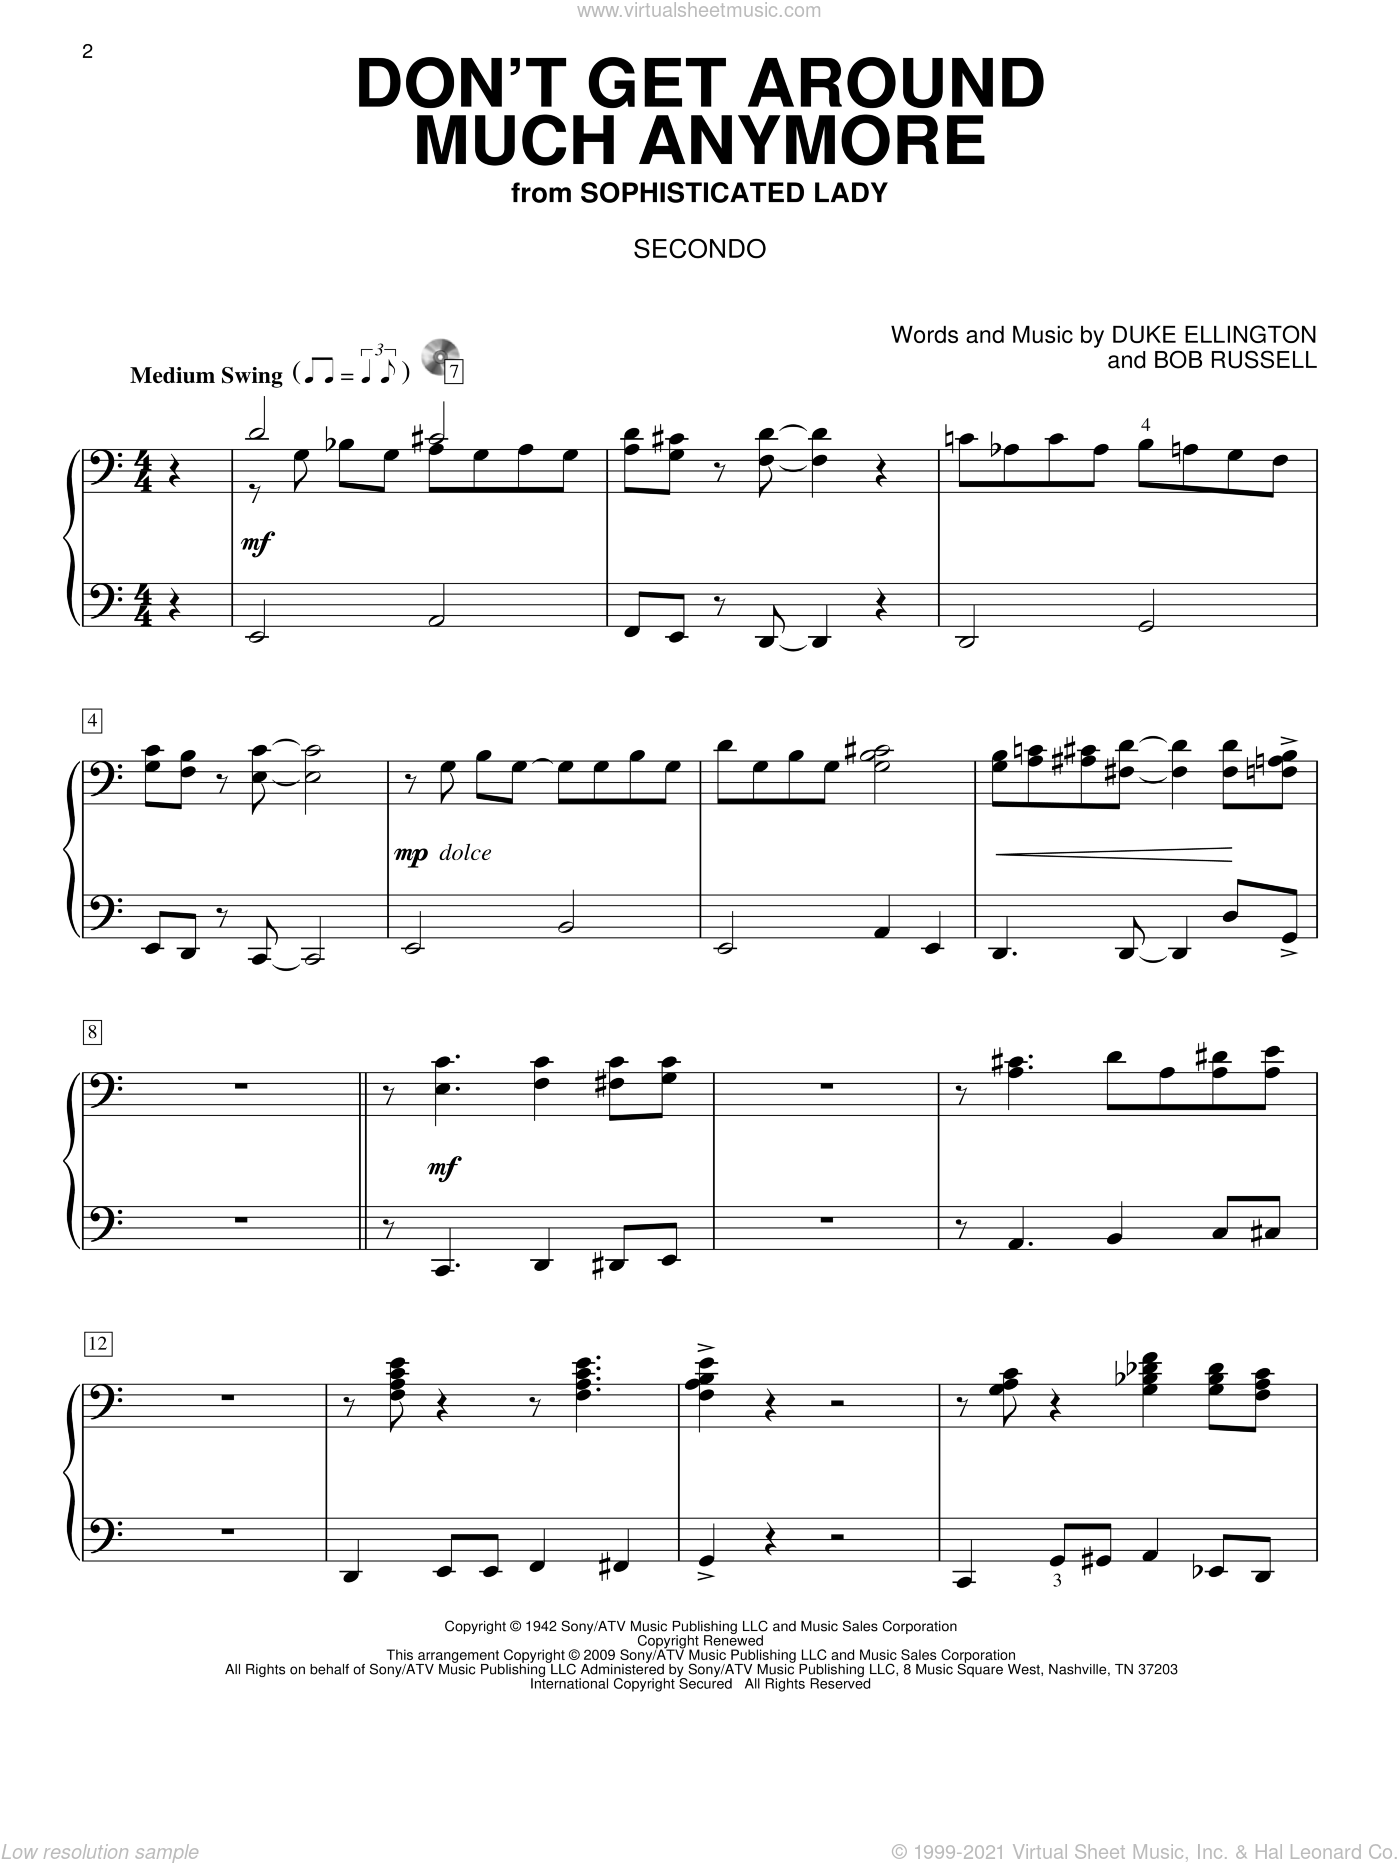 Don't Get Around Much Anymore sheet music for piano four hands (duets) by Bob Russell